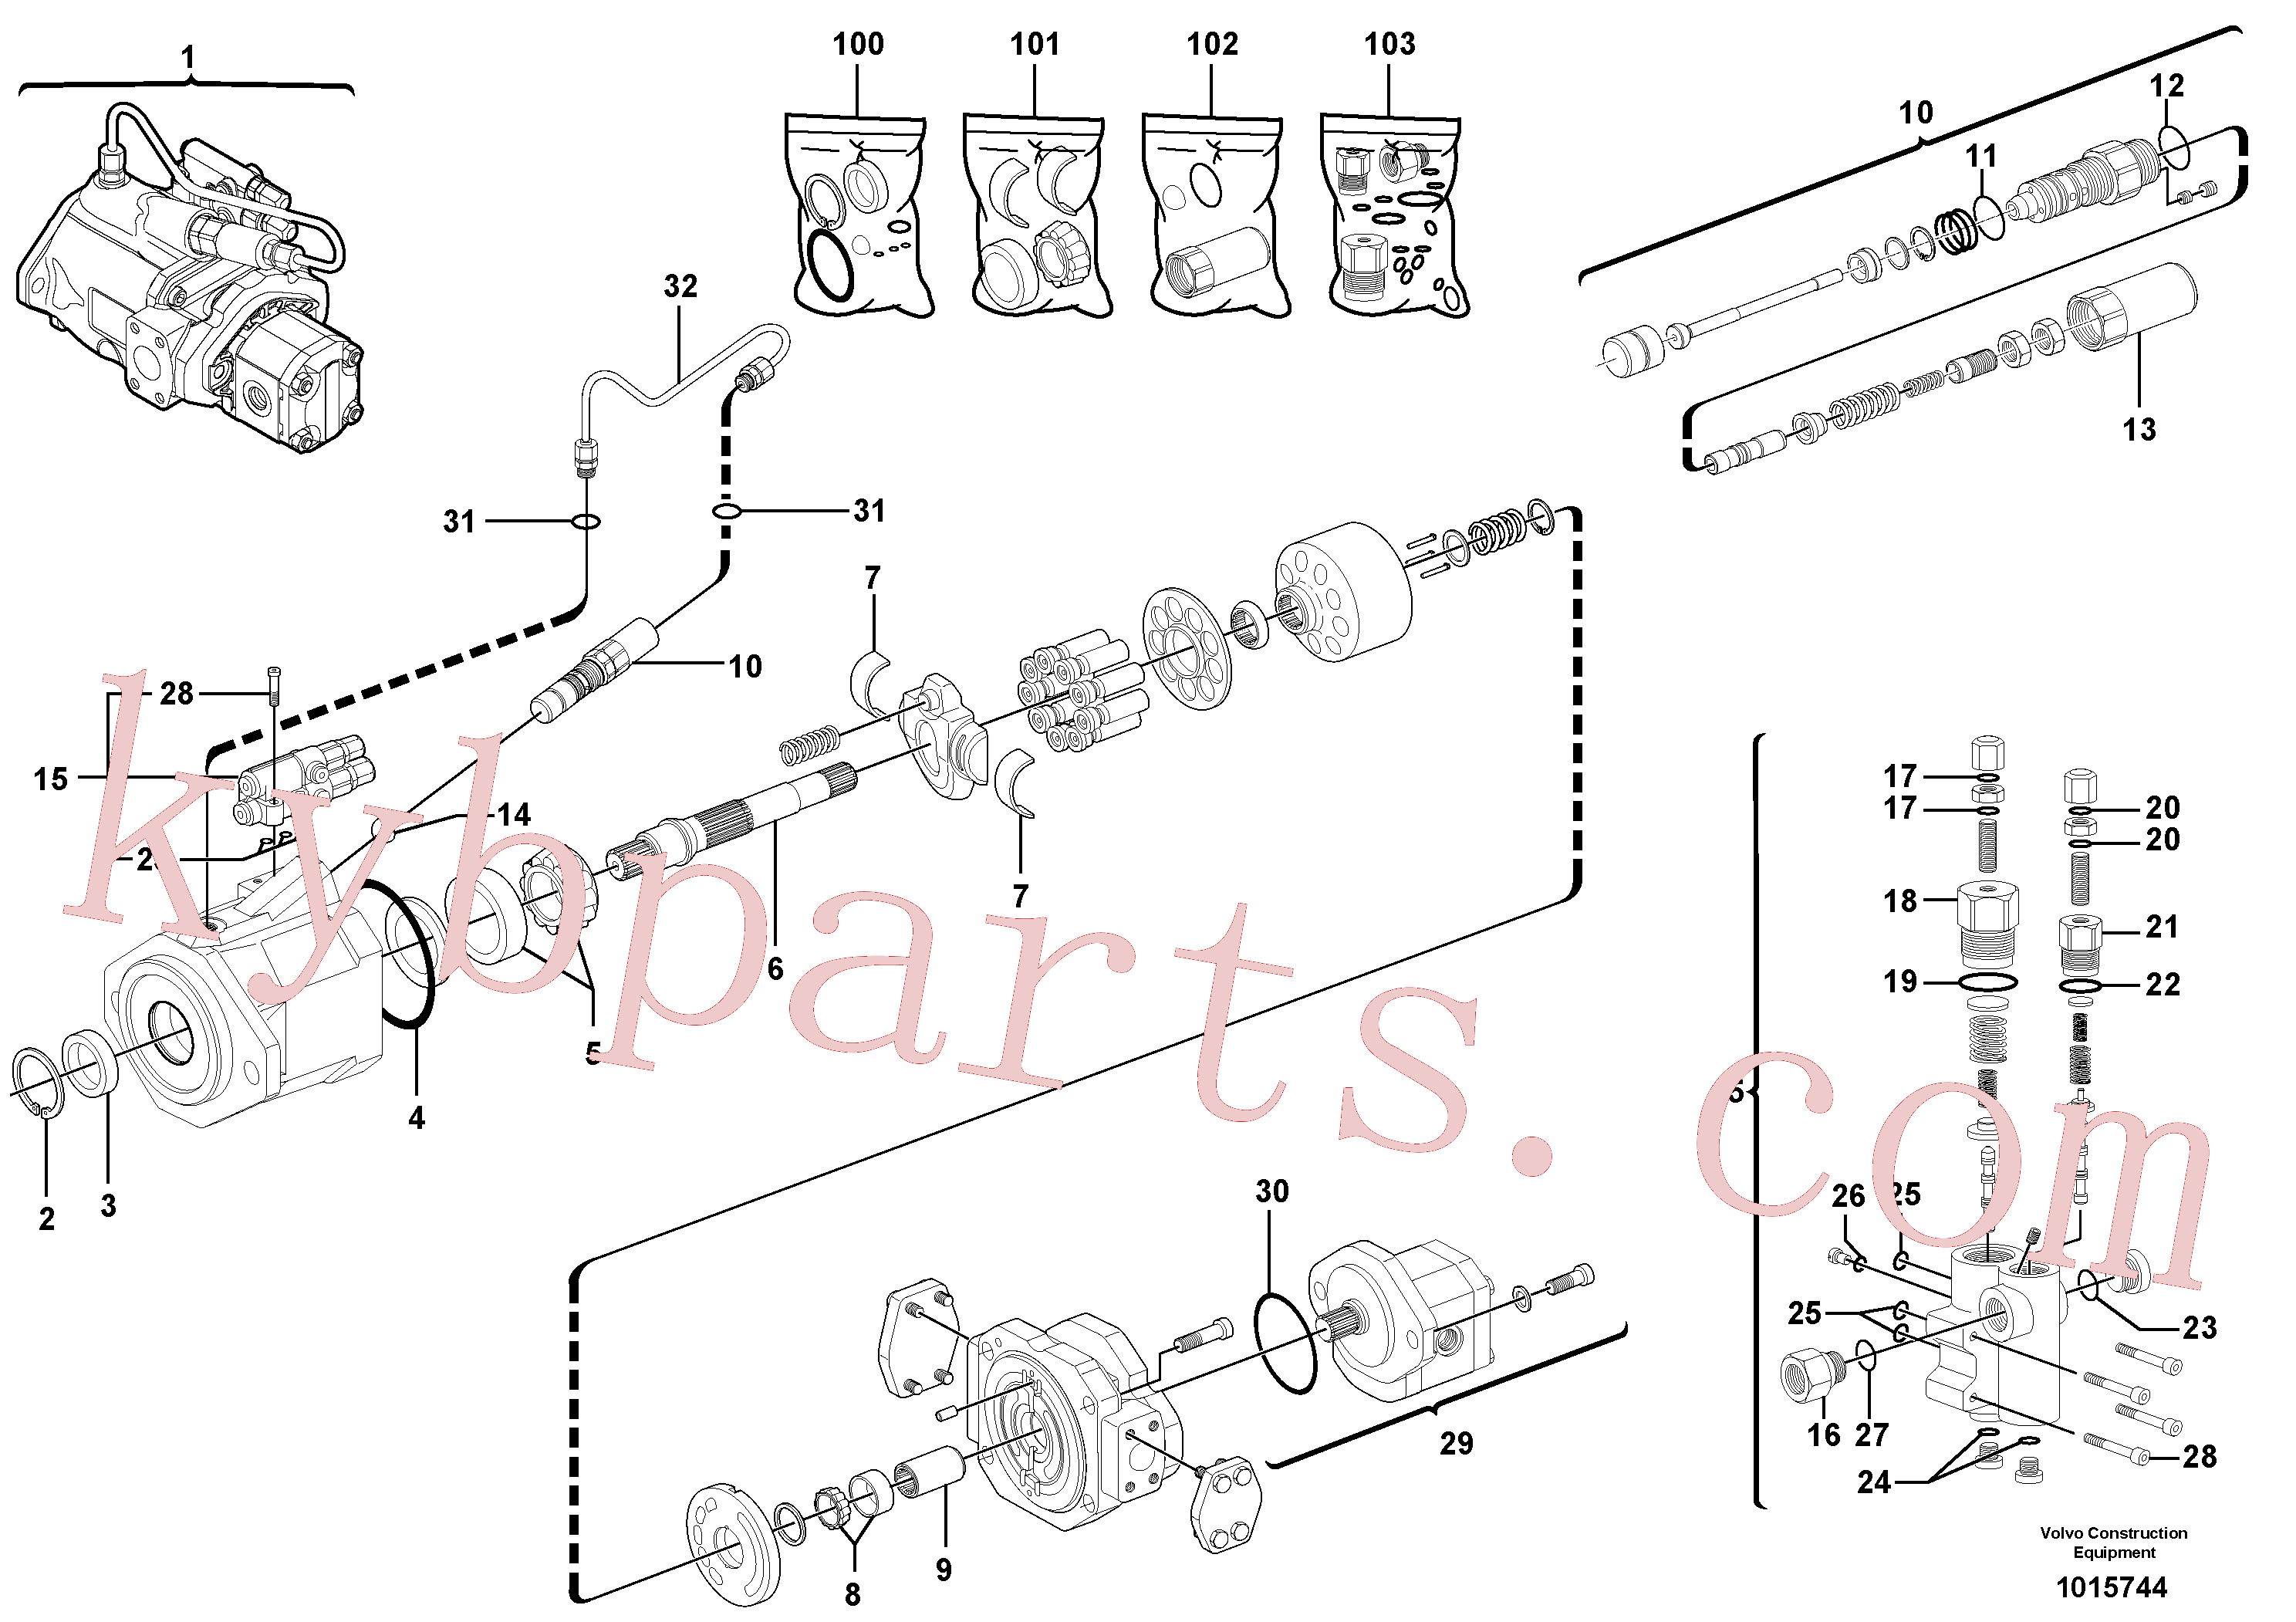 PJ7411728 for Volvo Hydraulic pump(1015744 assembly)